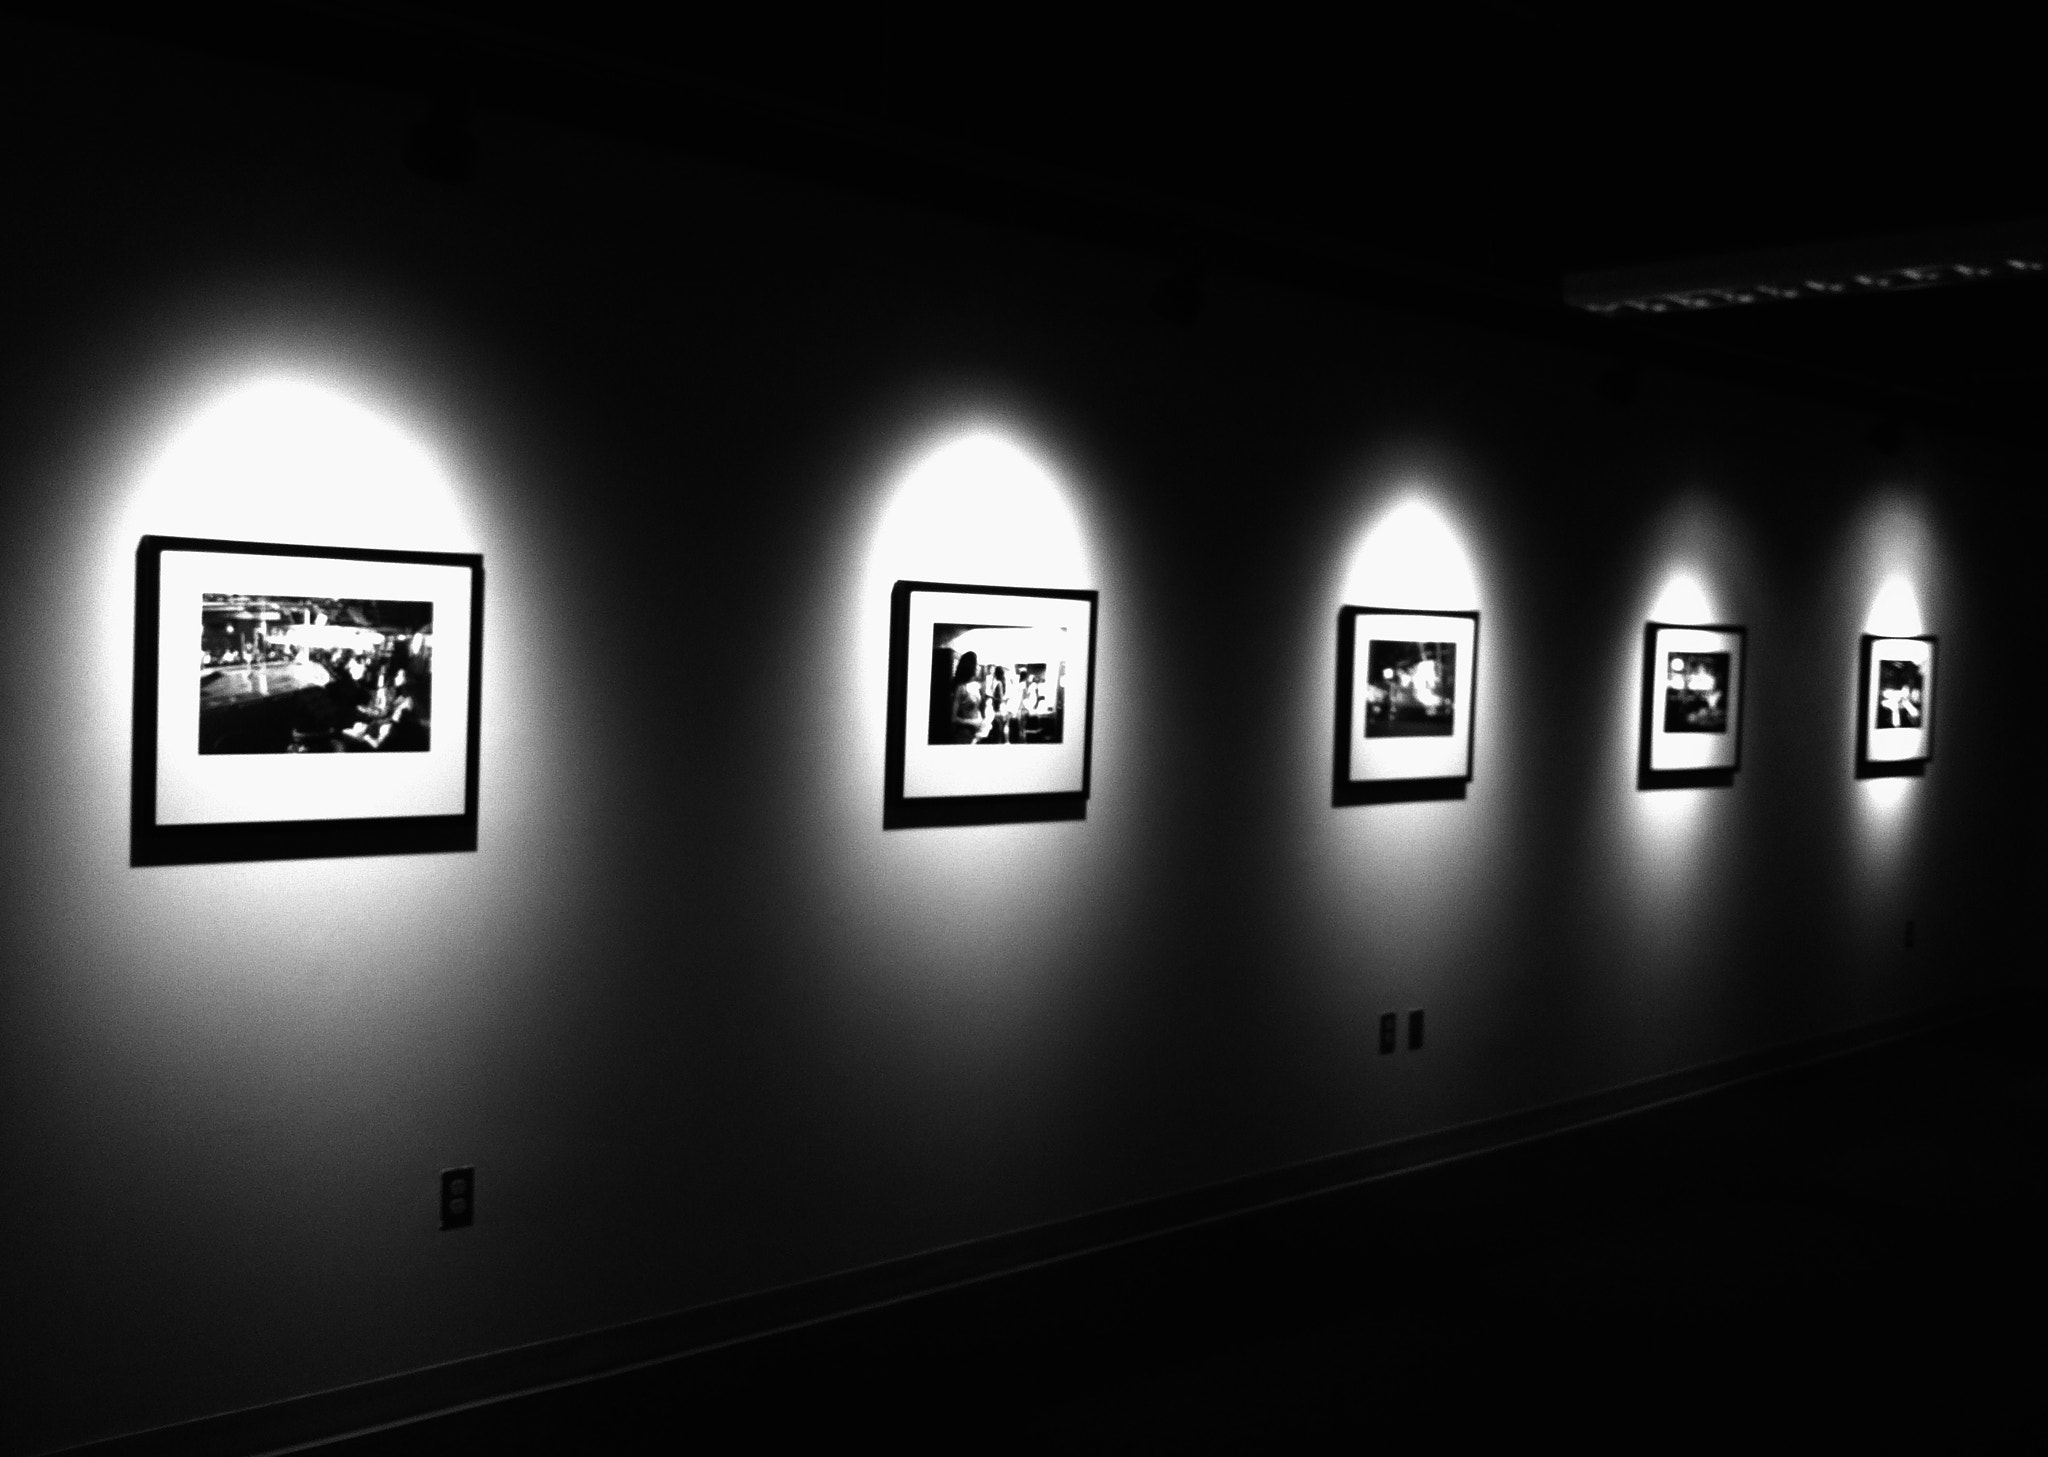 Photograph Gallery by Dustin Soehnel on 500px